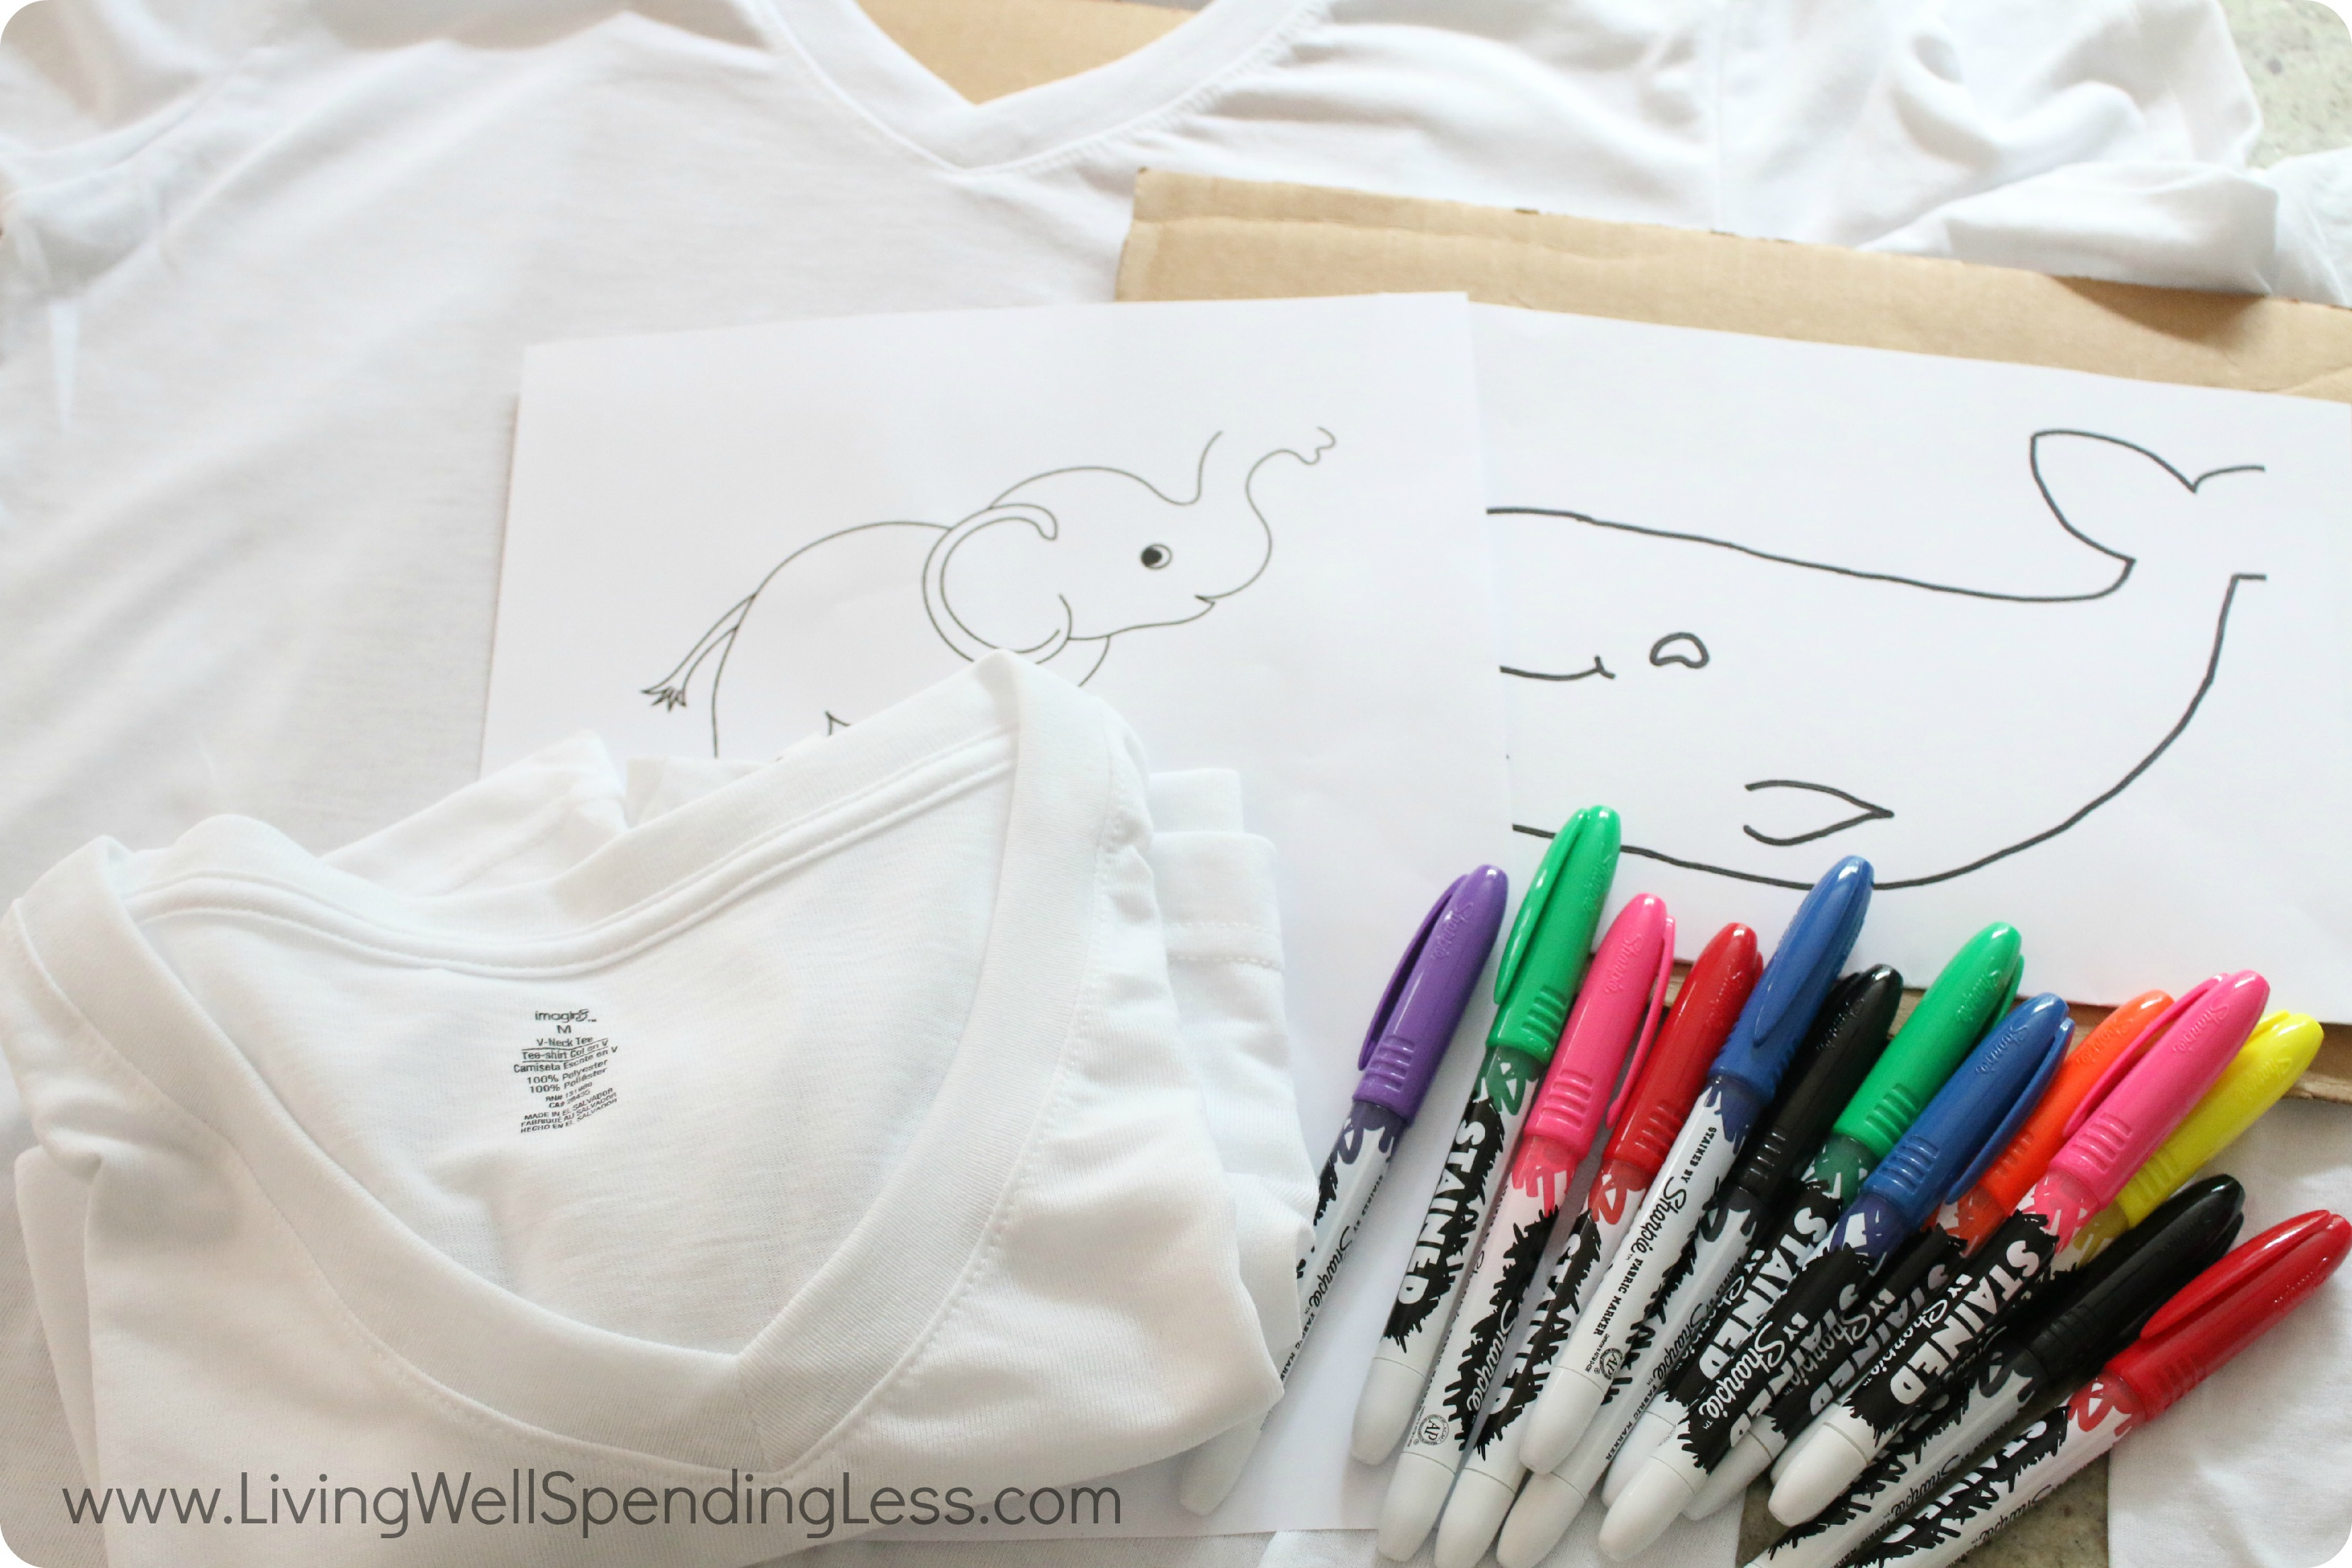 To make easy Sharpie dyed t-shirts simply gather sharpies, templates and some white or light tees.